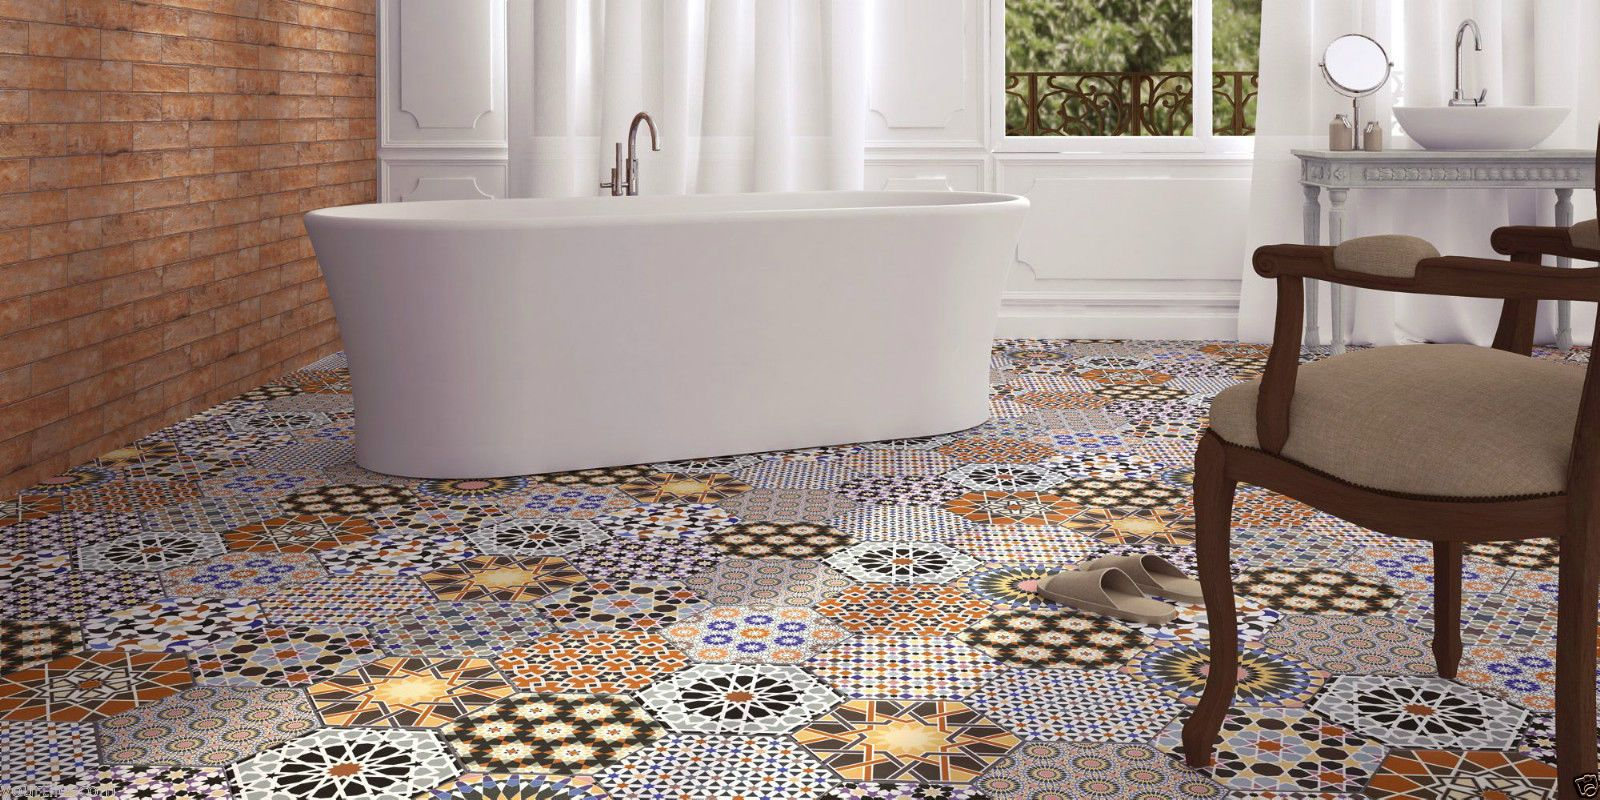 Istanbul hexagon multi colour patchwork victorian porcelain wall istanbul hexagon multi colour patchwork victorian porcelain wall floor tiles dailygadgetfo Gallery